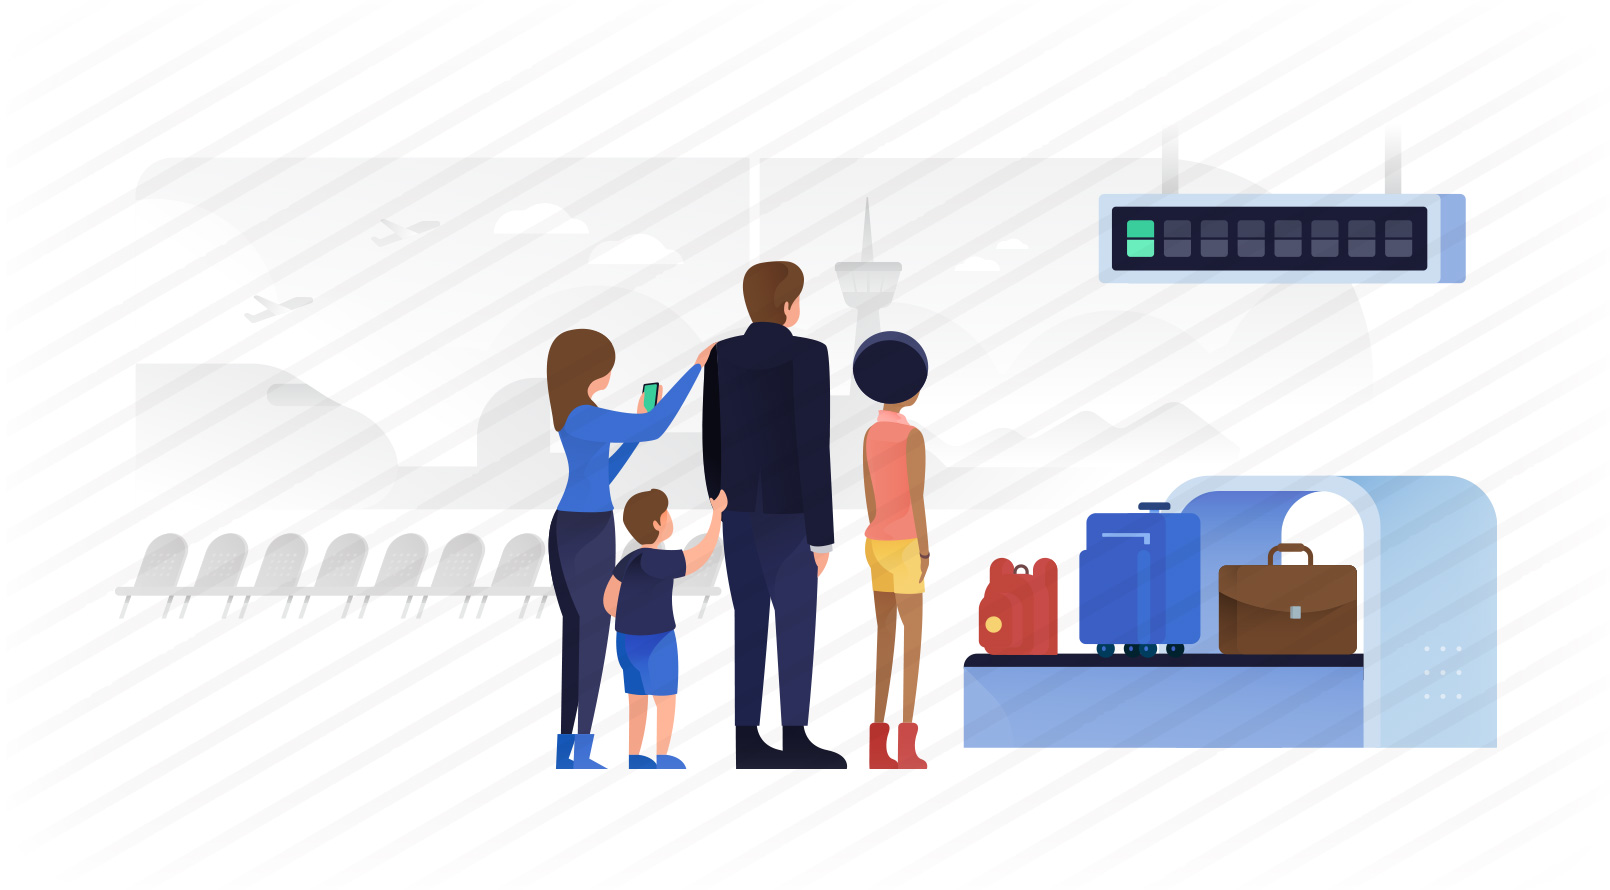 people-waiting-for-luggage-at-baggage-carousel-ui-banner-preview